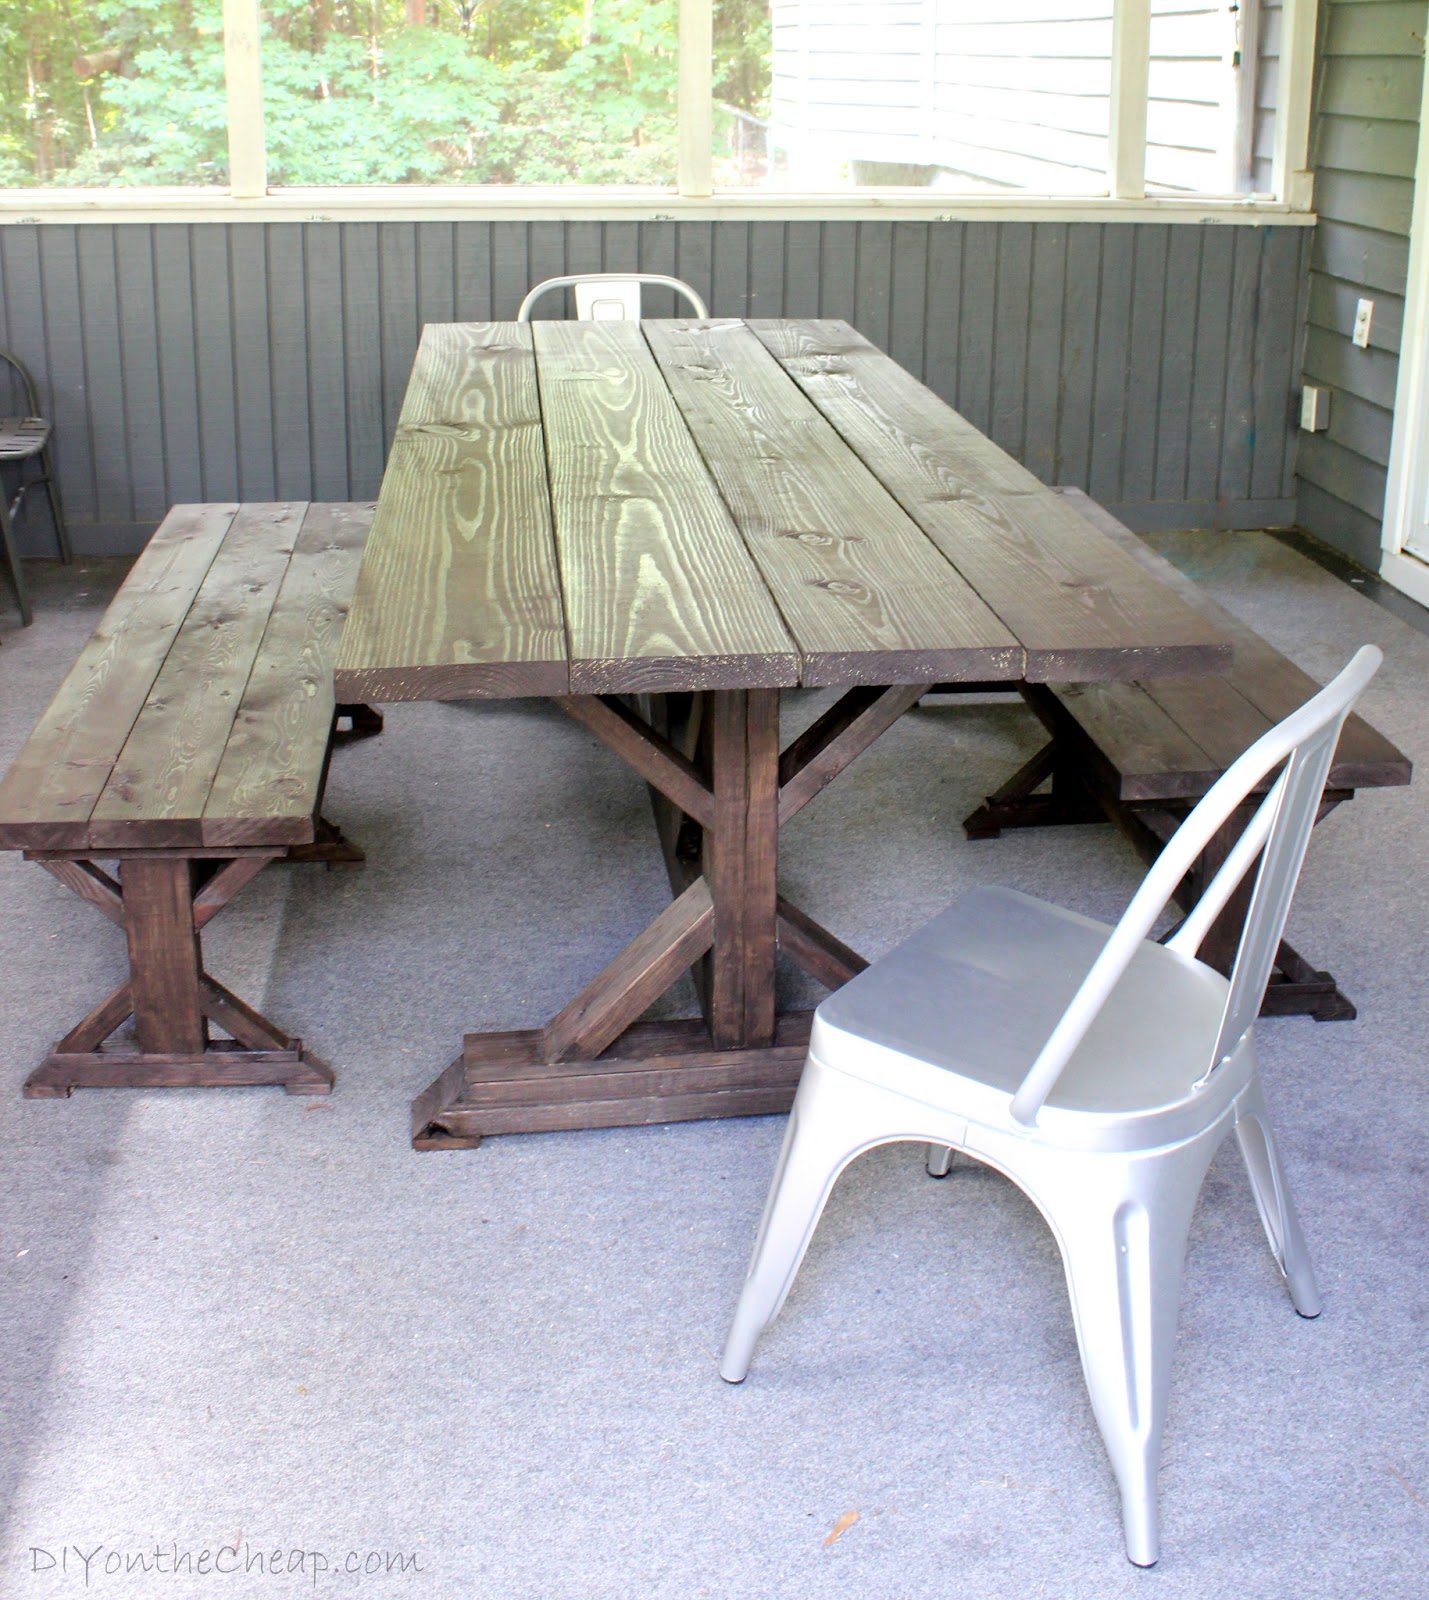 Anthro Inspired Outdoor Farmhouse Table & Benches DIY on the Cheap by E